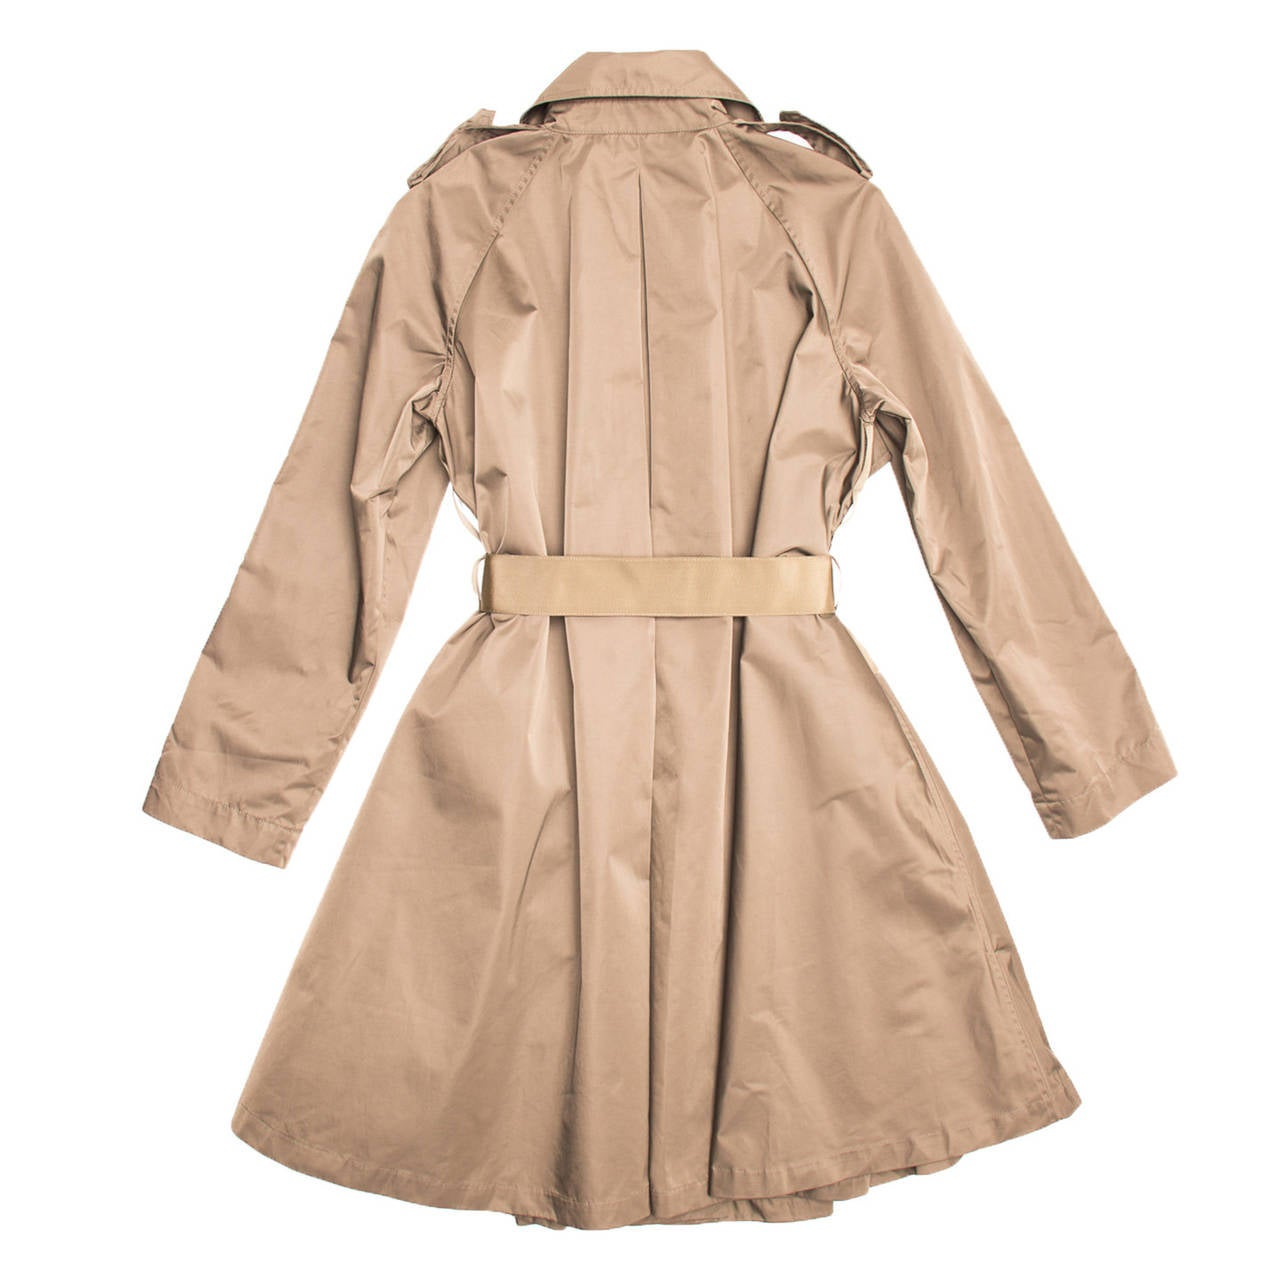 Lanvin Coat - 2008 Taupe Bell Shape Raincoat With Ribbon Belt 3